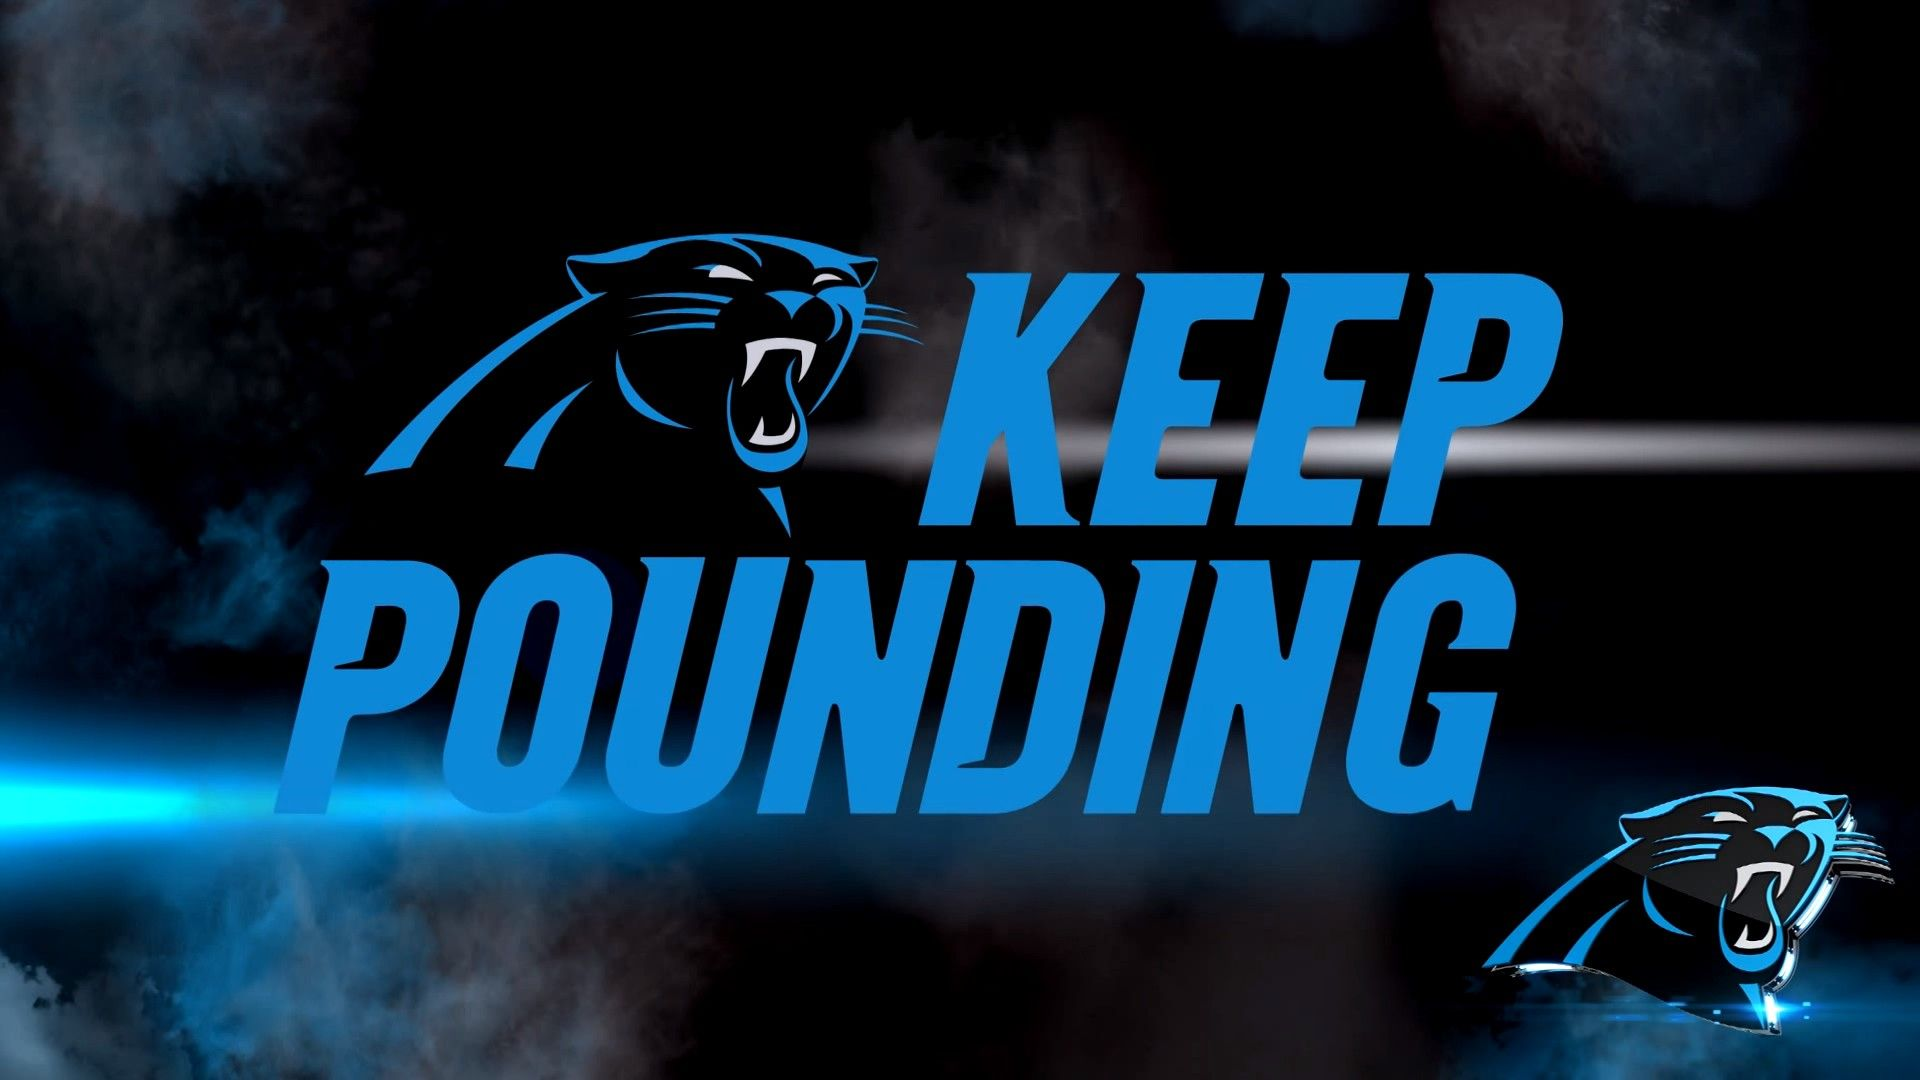 Wallpapers HD Carolina Panthers